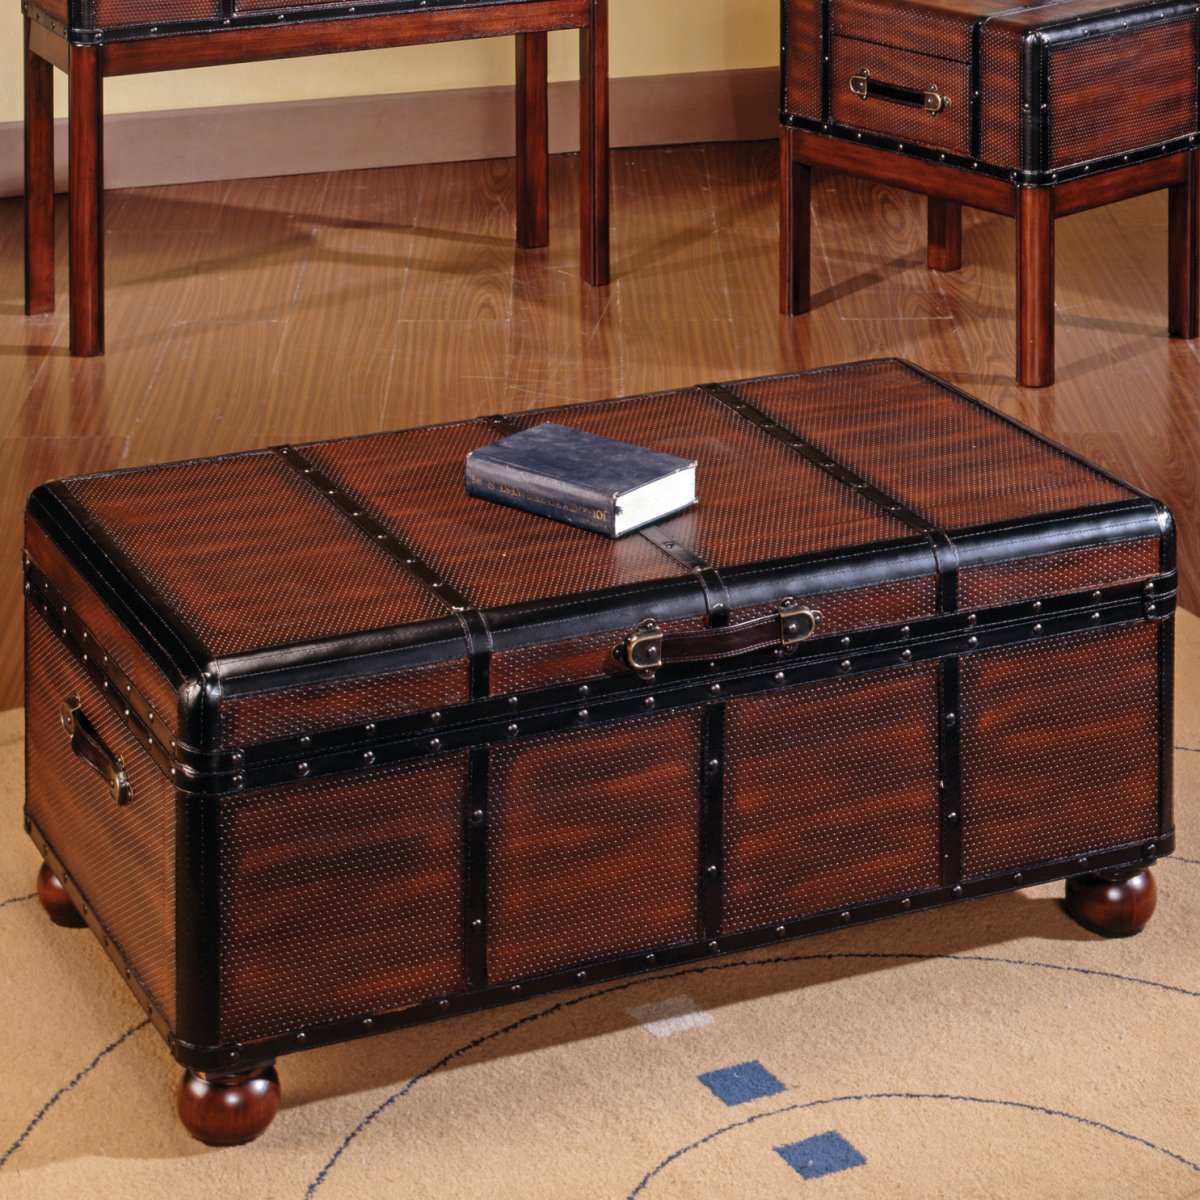 How To Build A Trunk Coffee Table